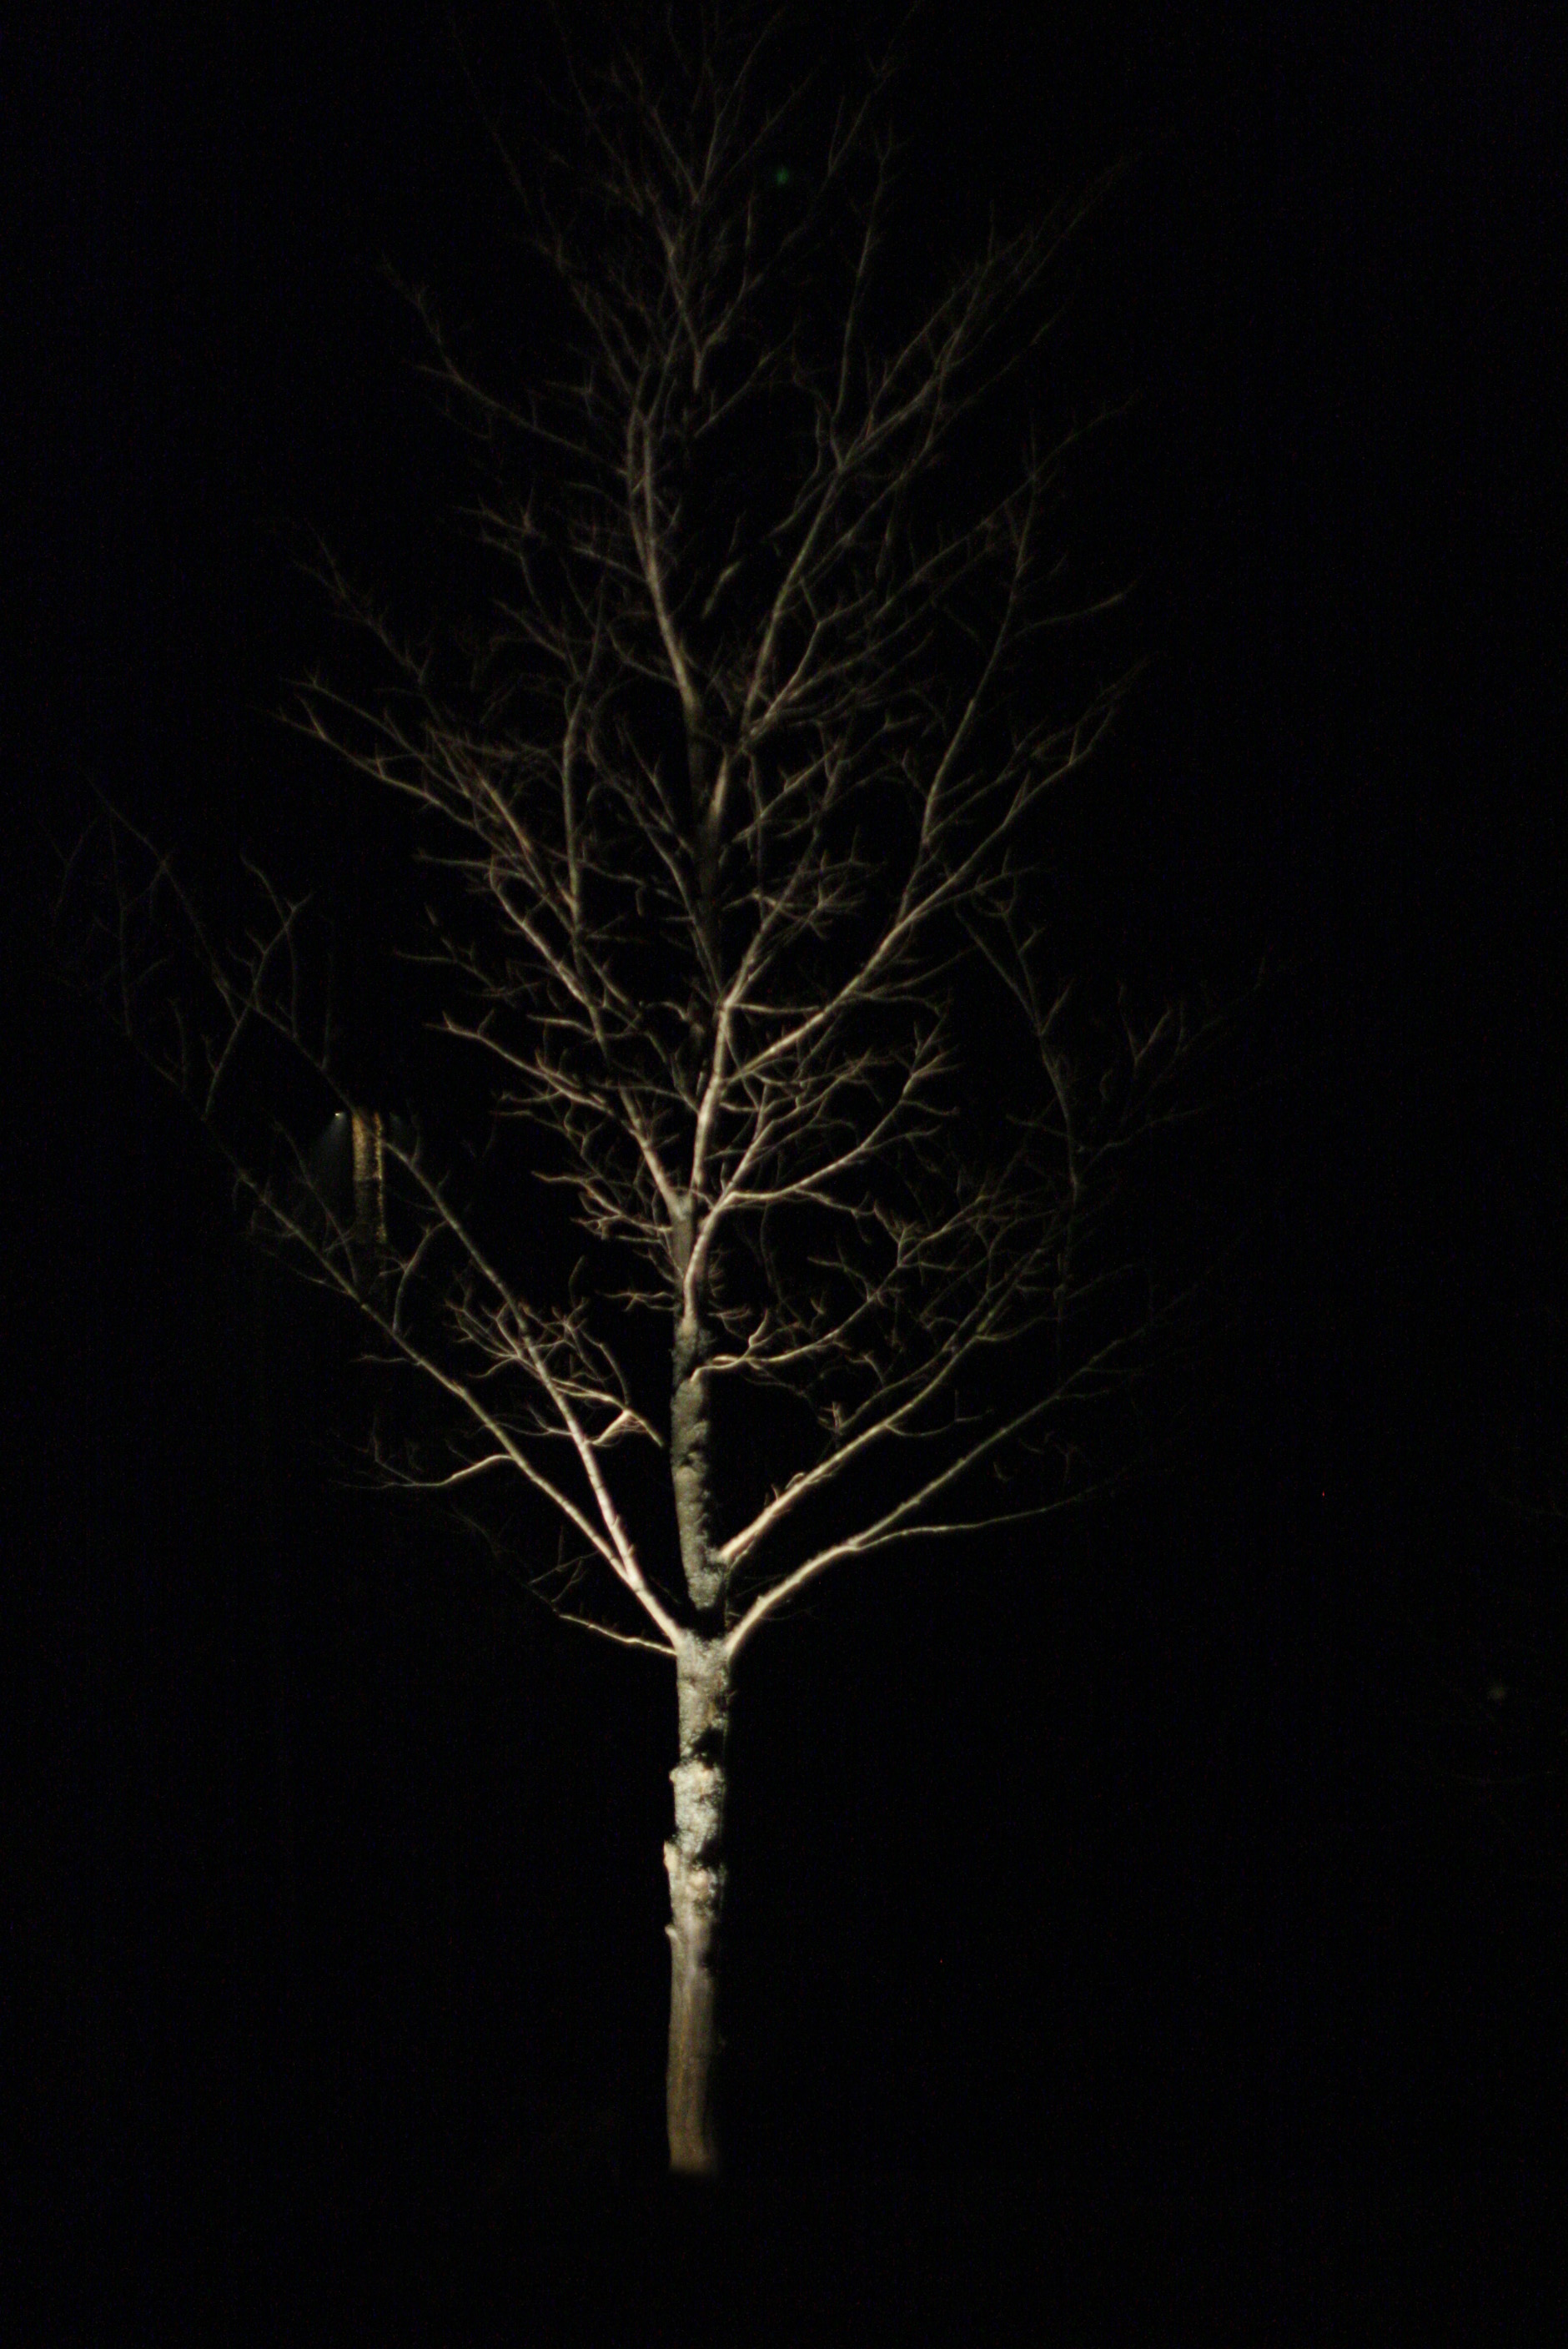 maple tree illuminated by landscape lighting